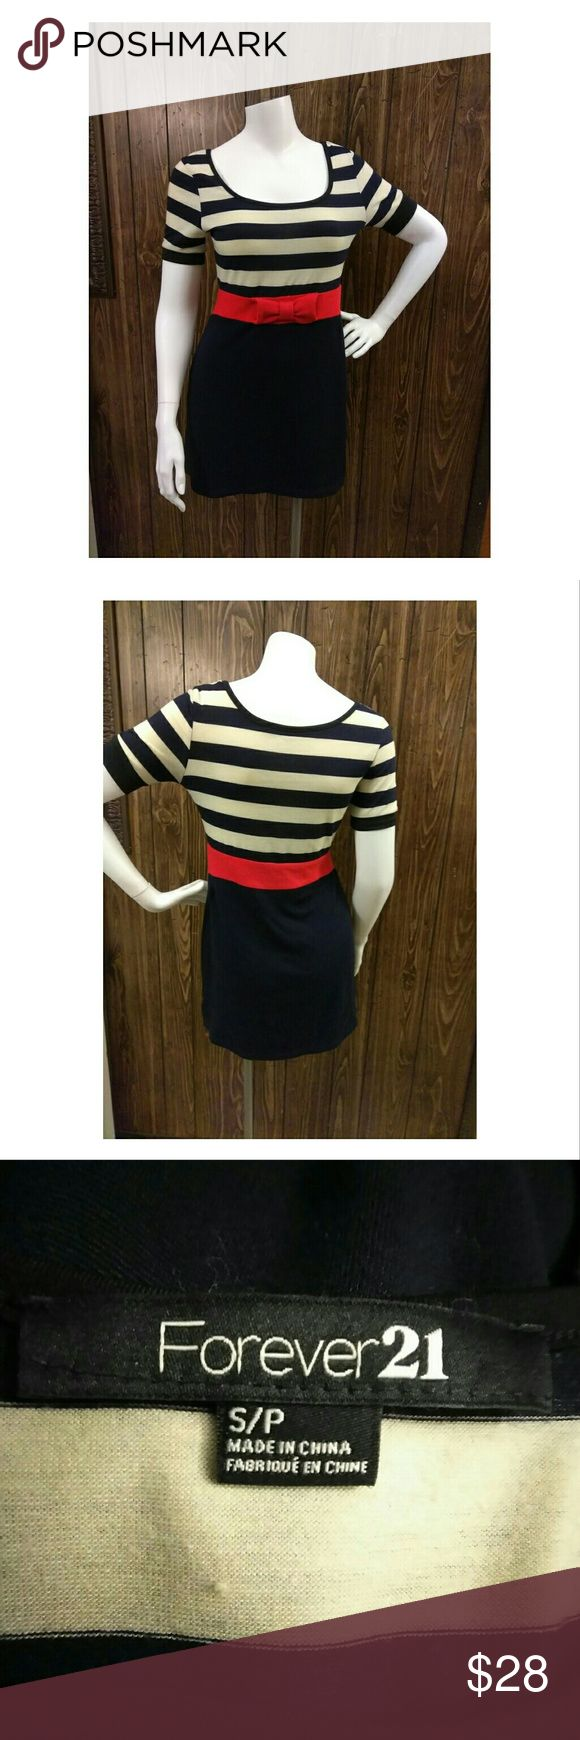 🍒FOREVER 21🍒 Striped Nautical inspired dress Excellent pre-loved 💖 condition, nautical inspired striped design. A Knit Dress with a round neckline and short sleeves. Petite smqll Forever 21 Dresses Mini